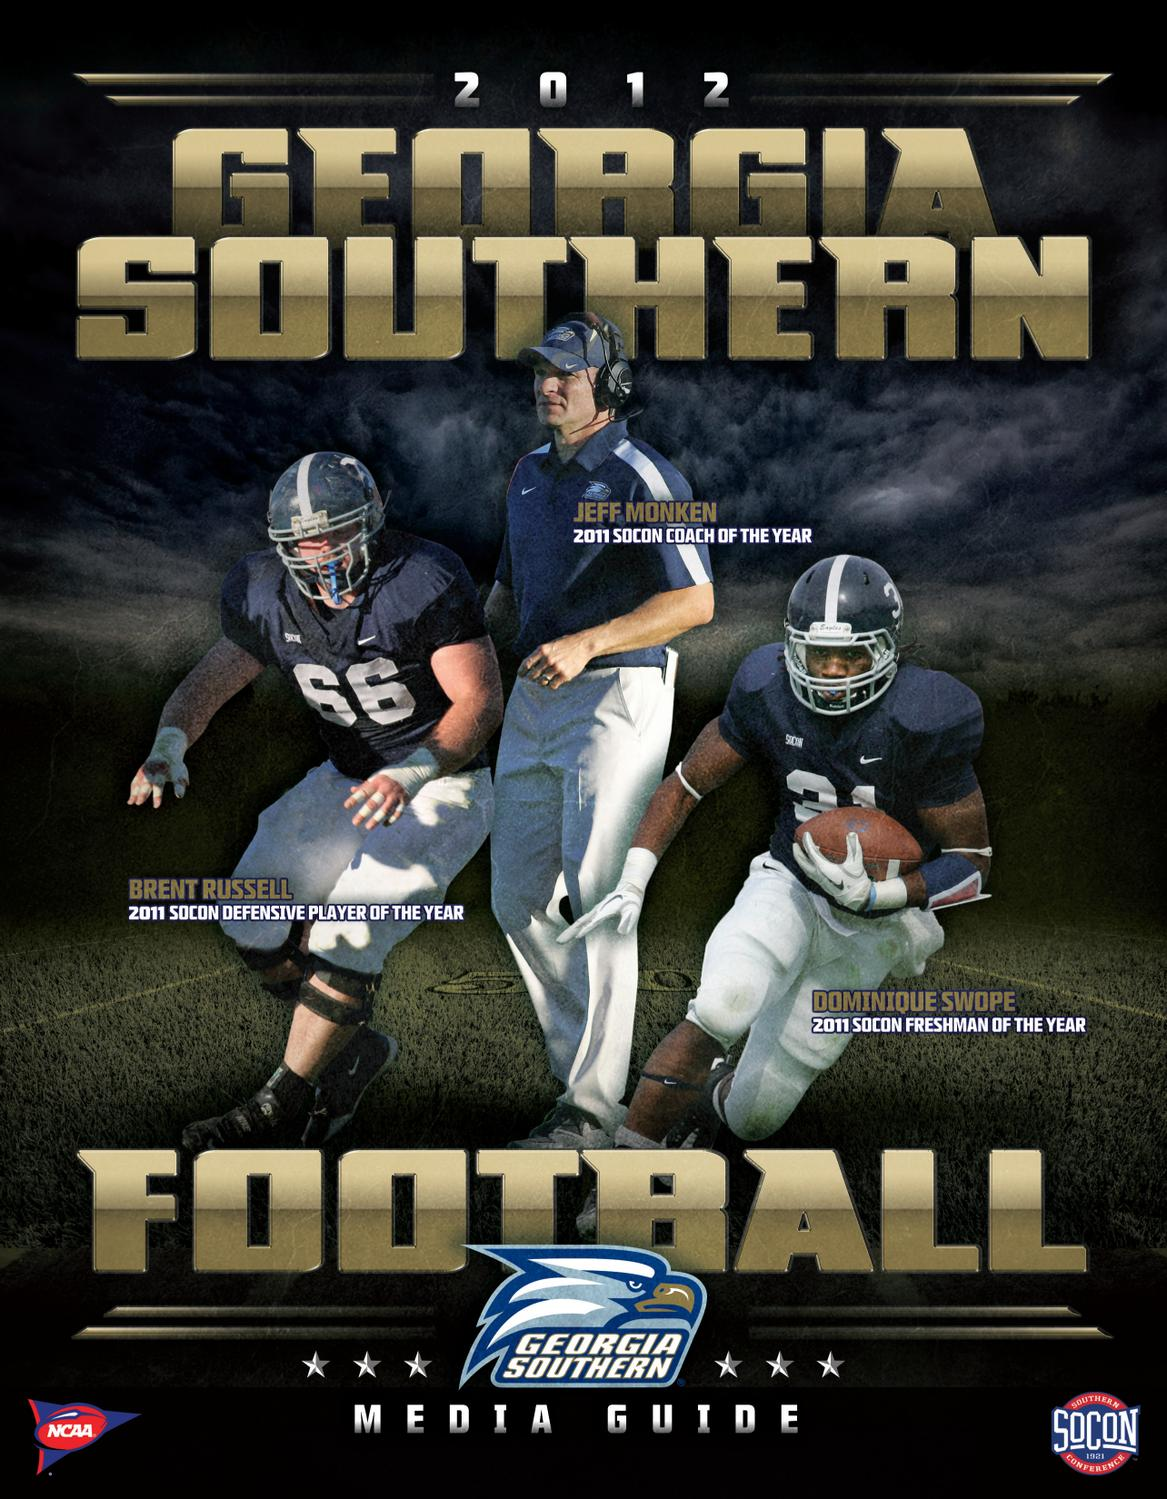 2012 Georgia Southern Football Media Guide by